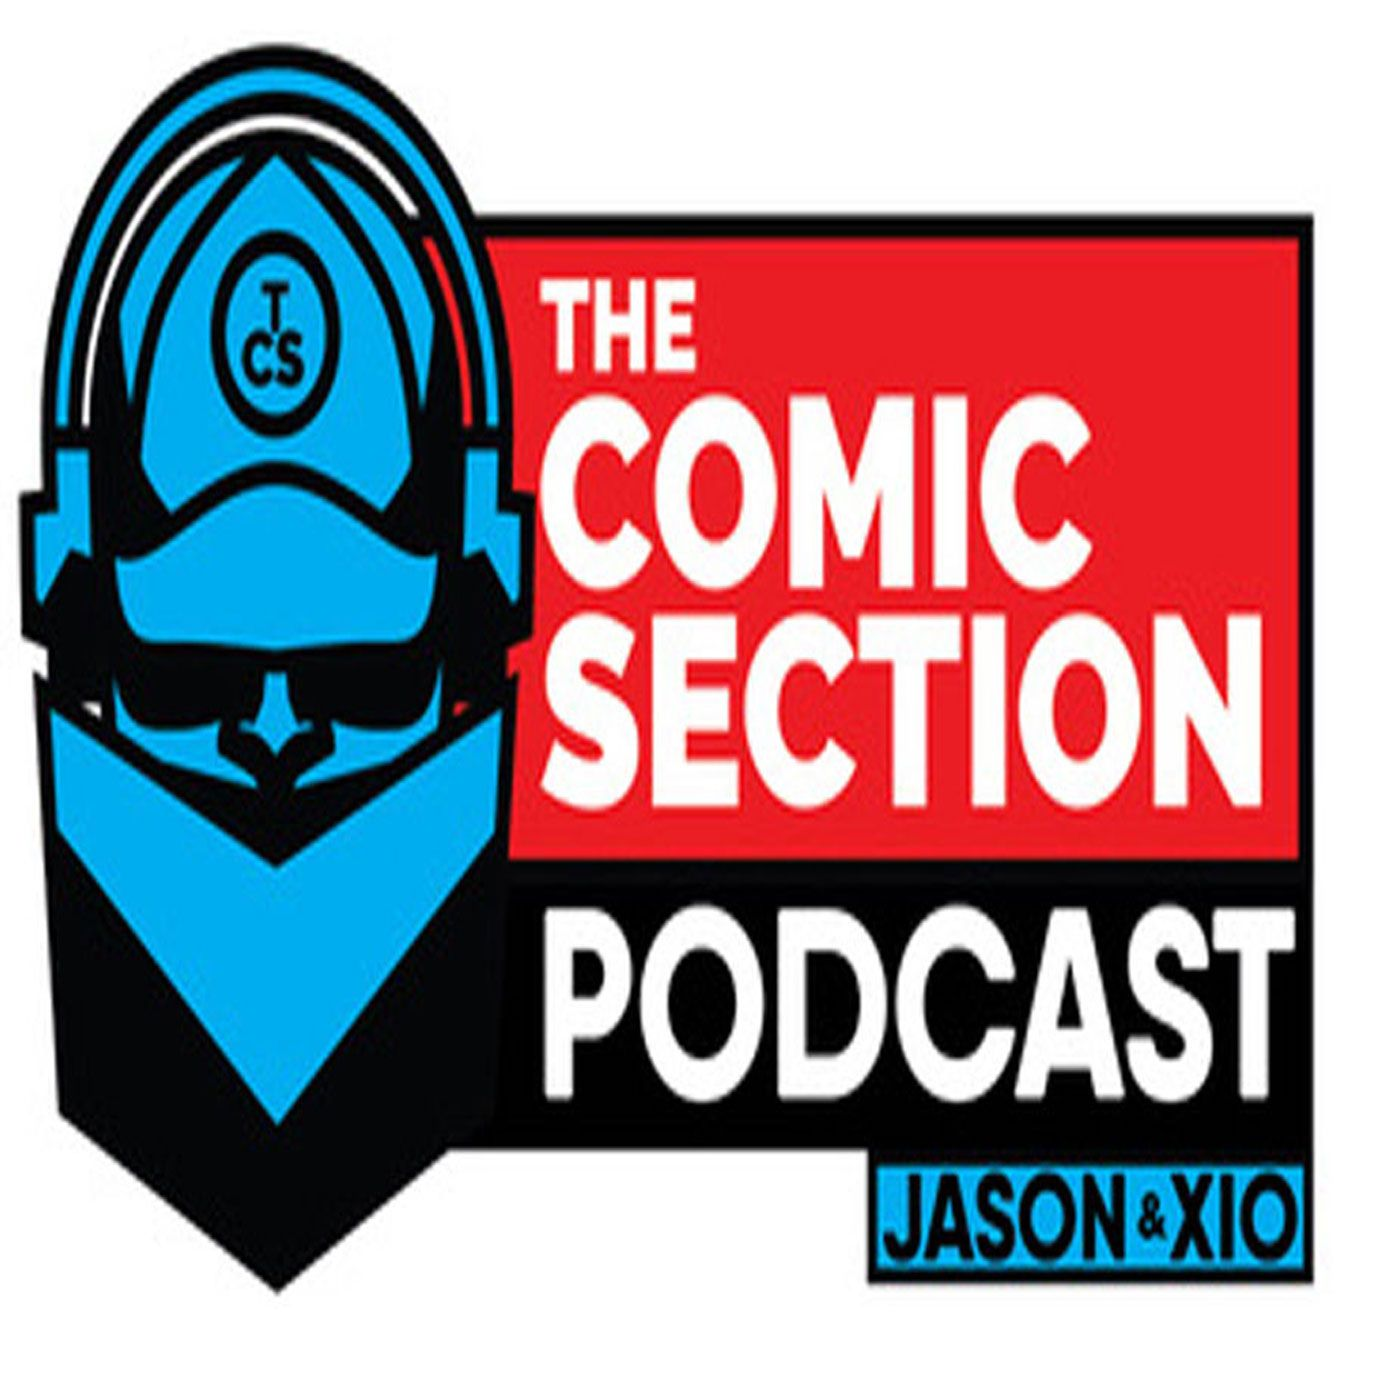 The Comic Section Podcast